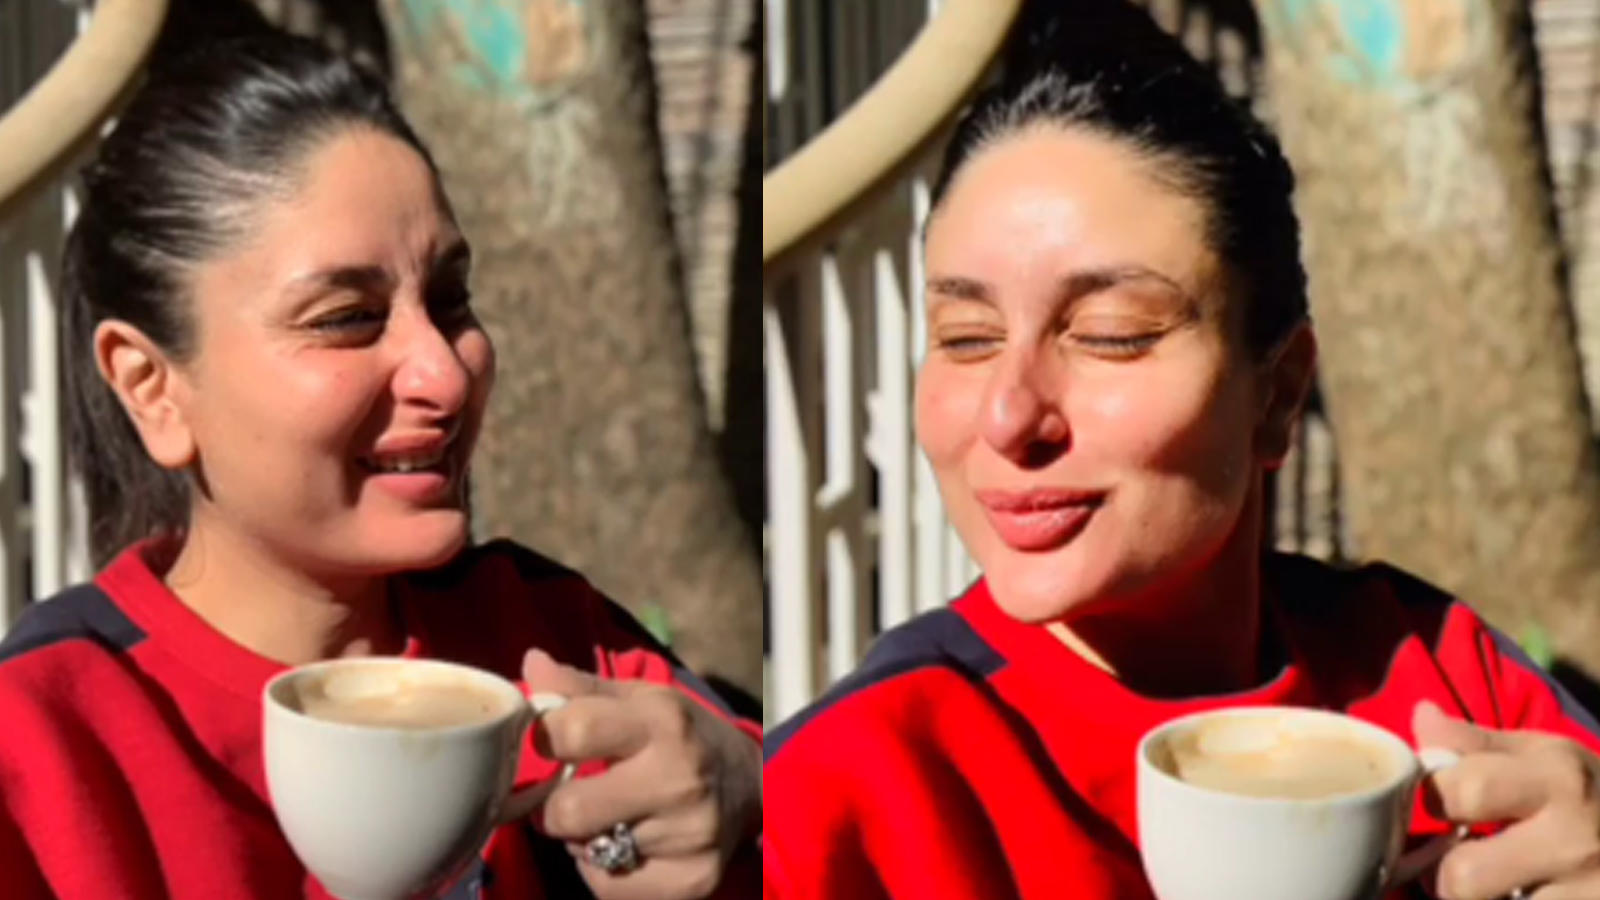 breakfast-with-bebo-pregnant-kareena-kapoor-khan-relishes-a-hot-cup-of-coffee-soaking-in-the-sun-shares-video